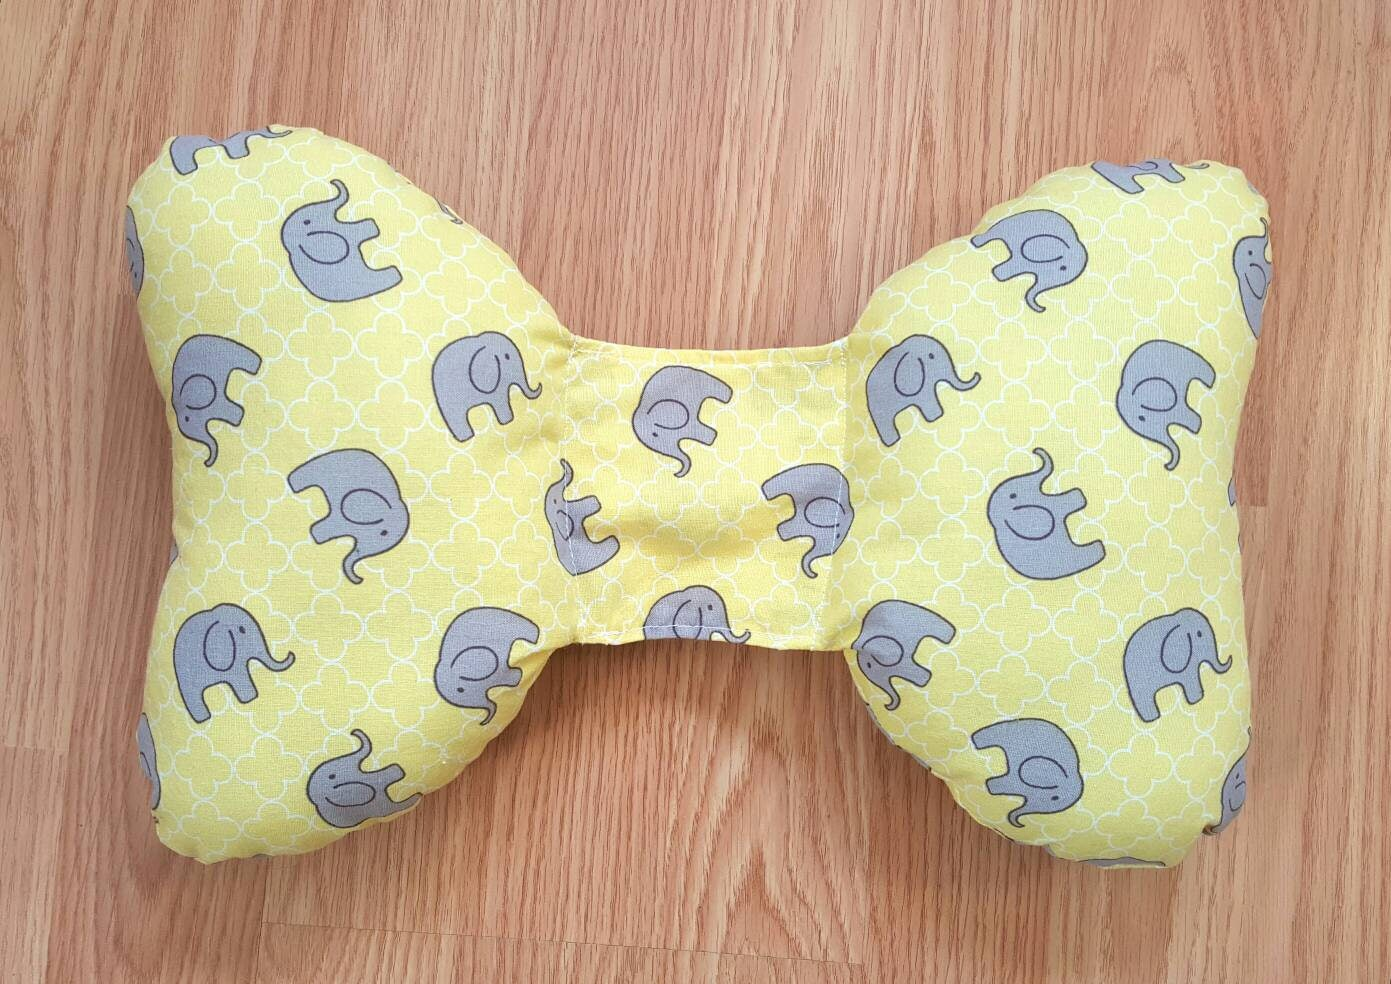 Infant Head Support Torticollis Newborn Car Seat Unique Baby Show Gifts Accessories Elephant Ear Pillow